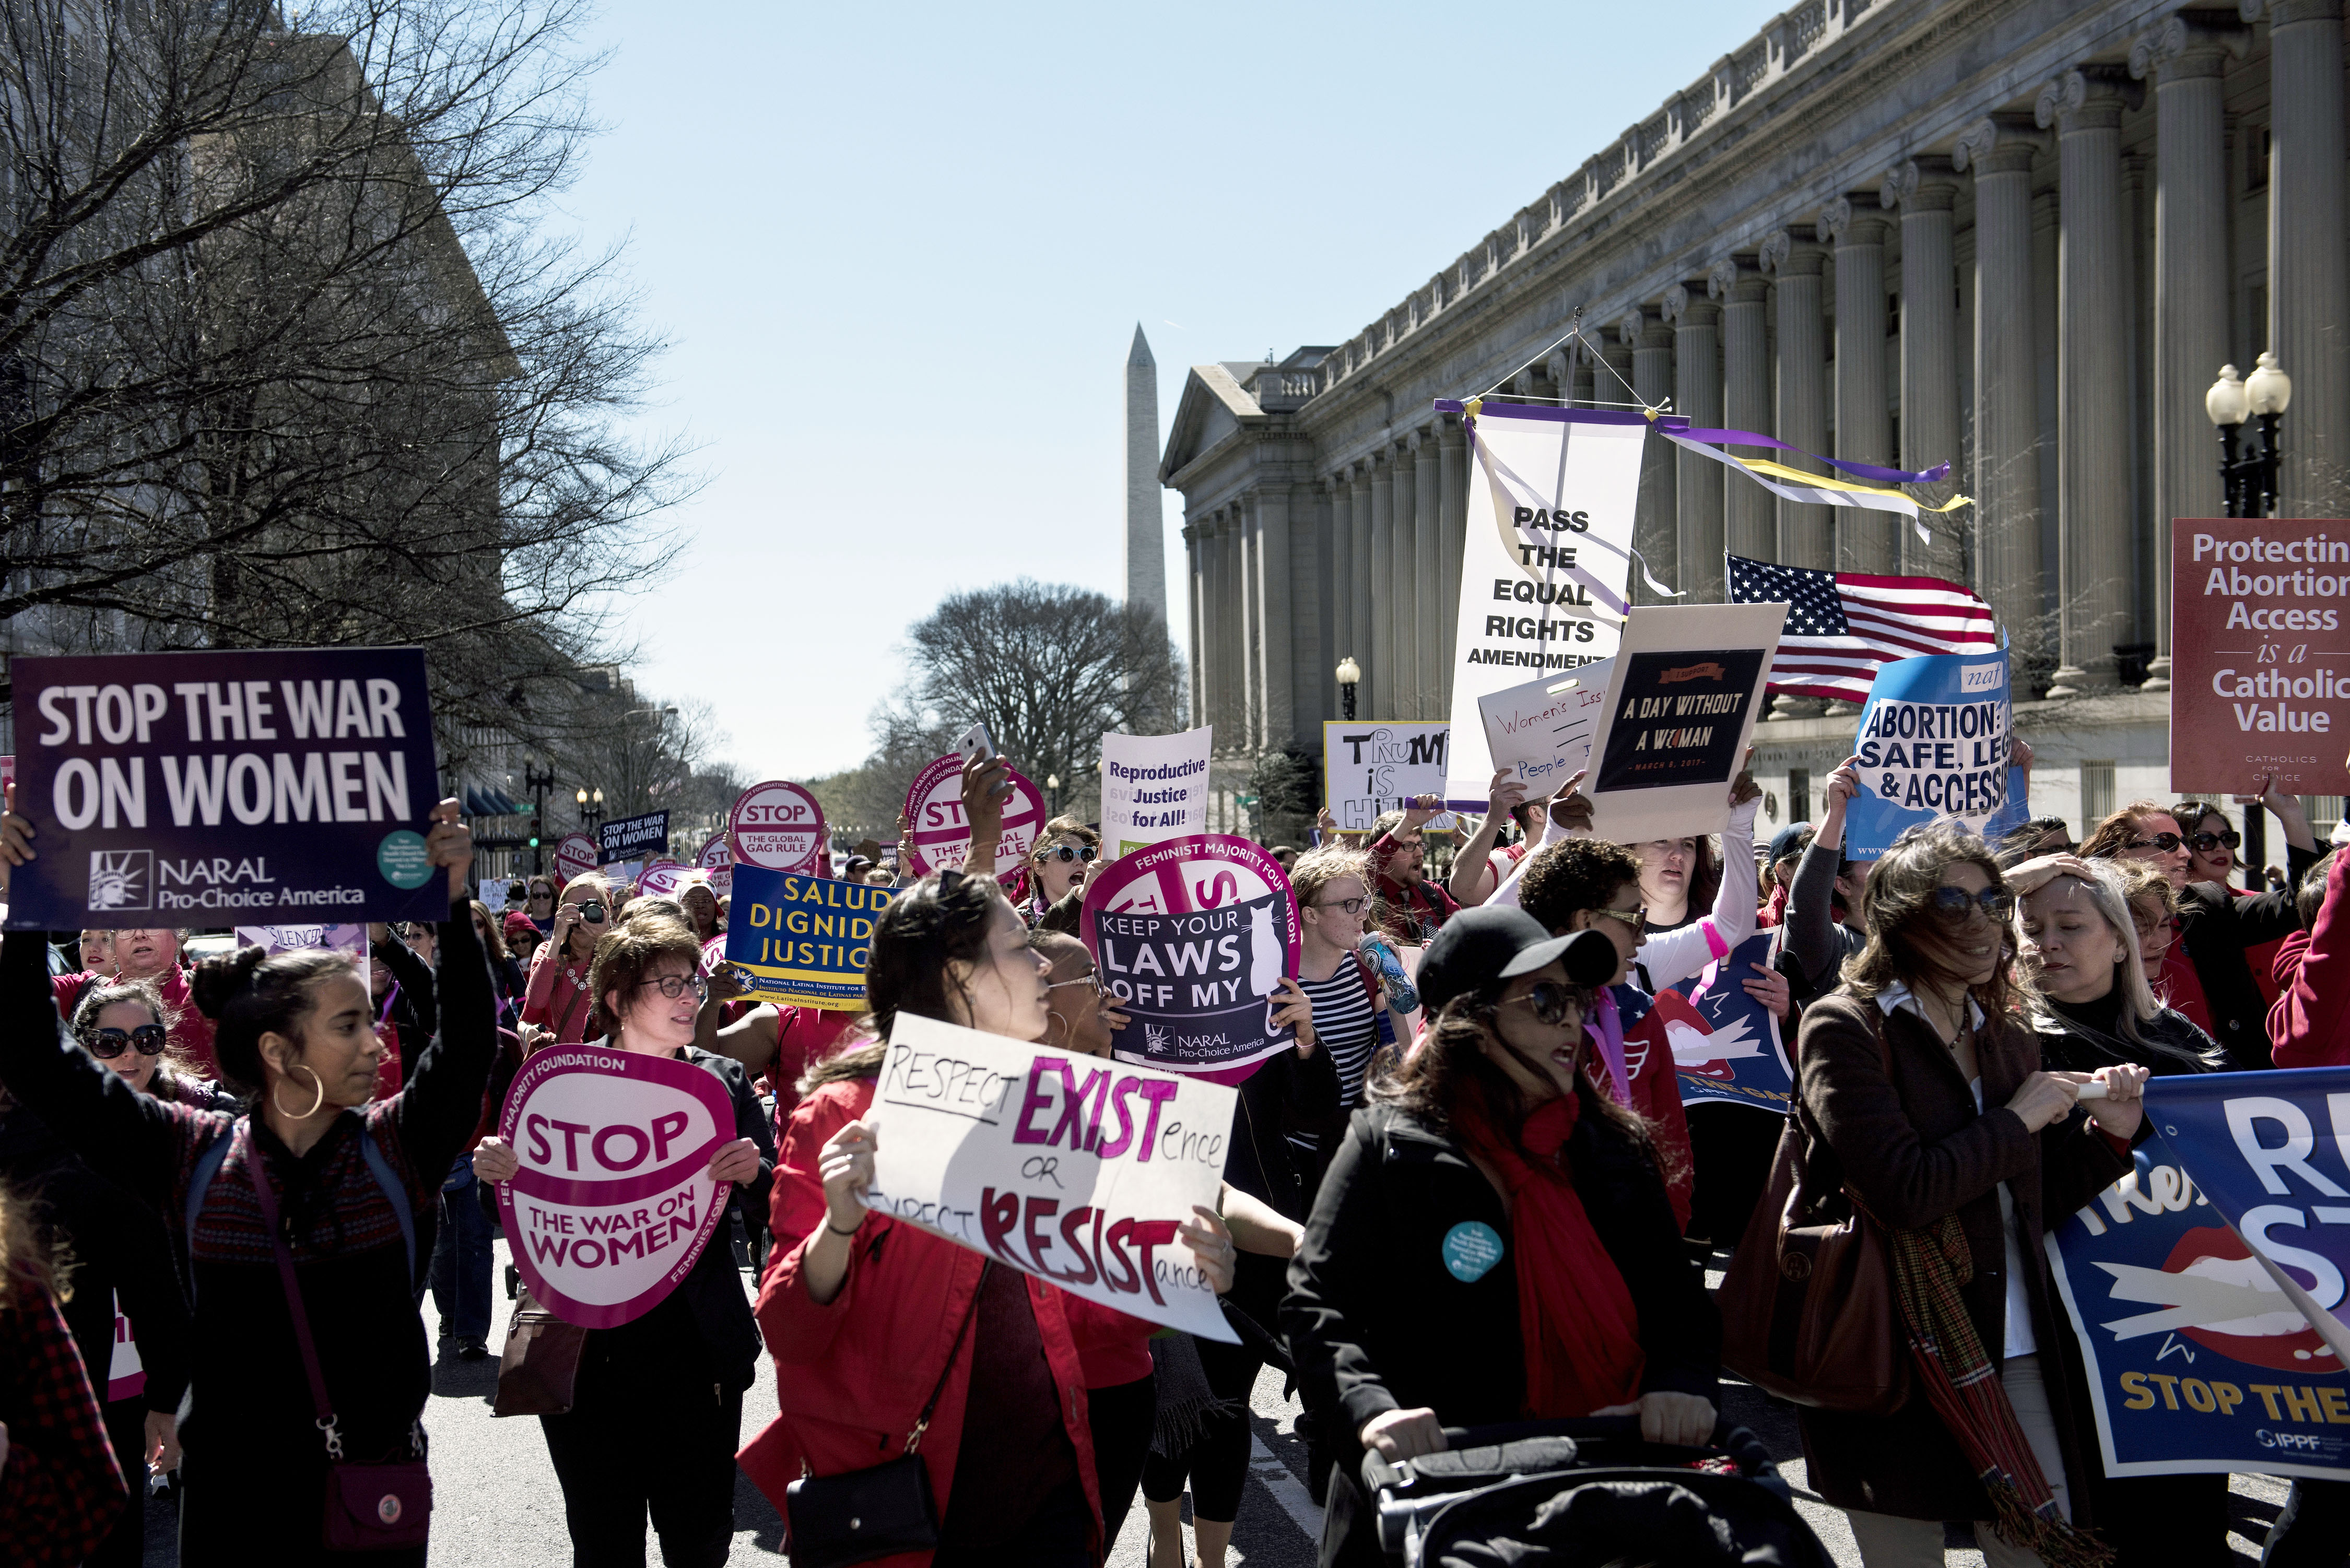 Activists protest the Trump administration and rally for women's rights during a march to honor International Woman's Day on March 8, 2017 in Washington, DC.